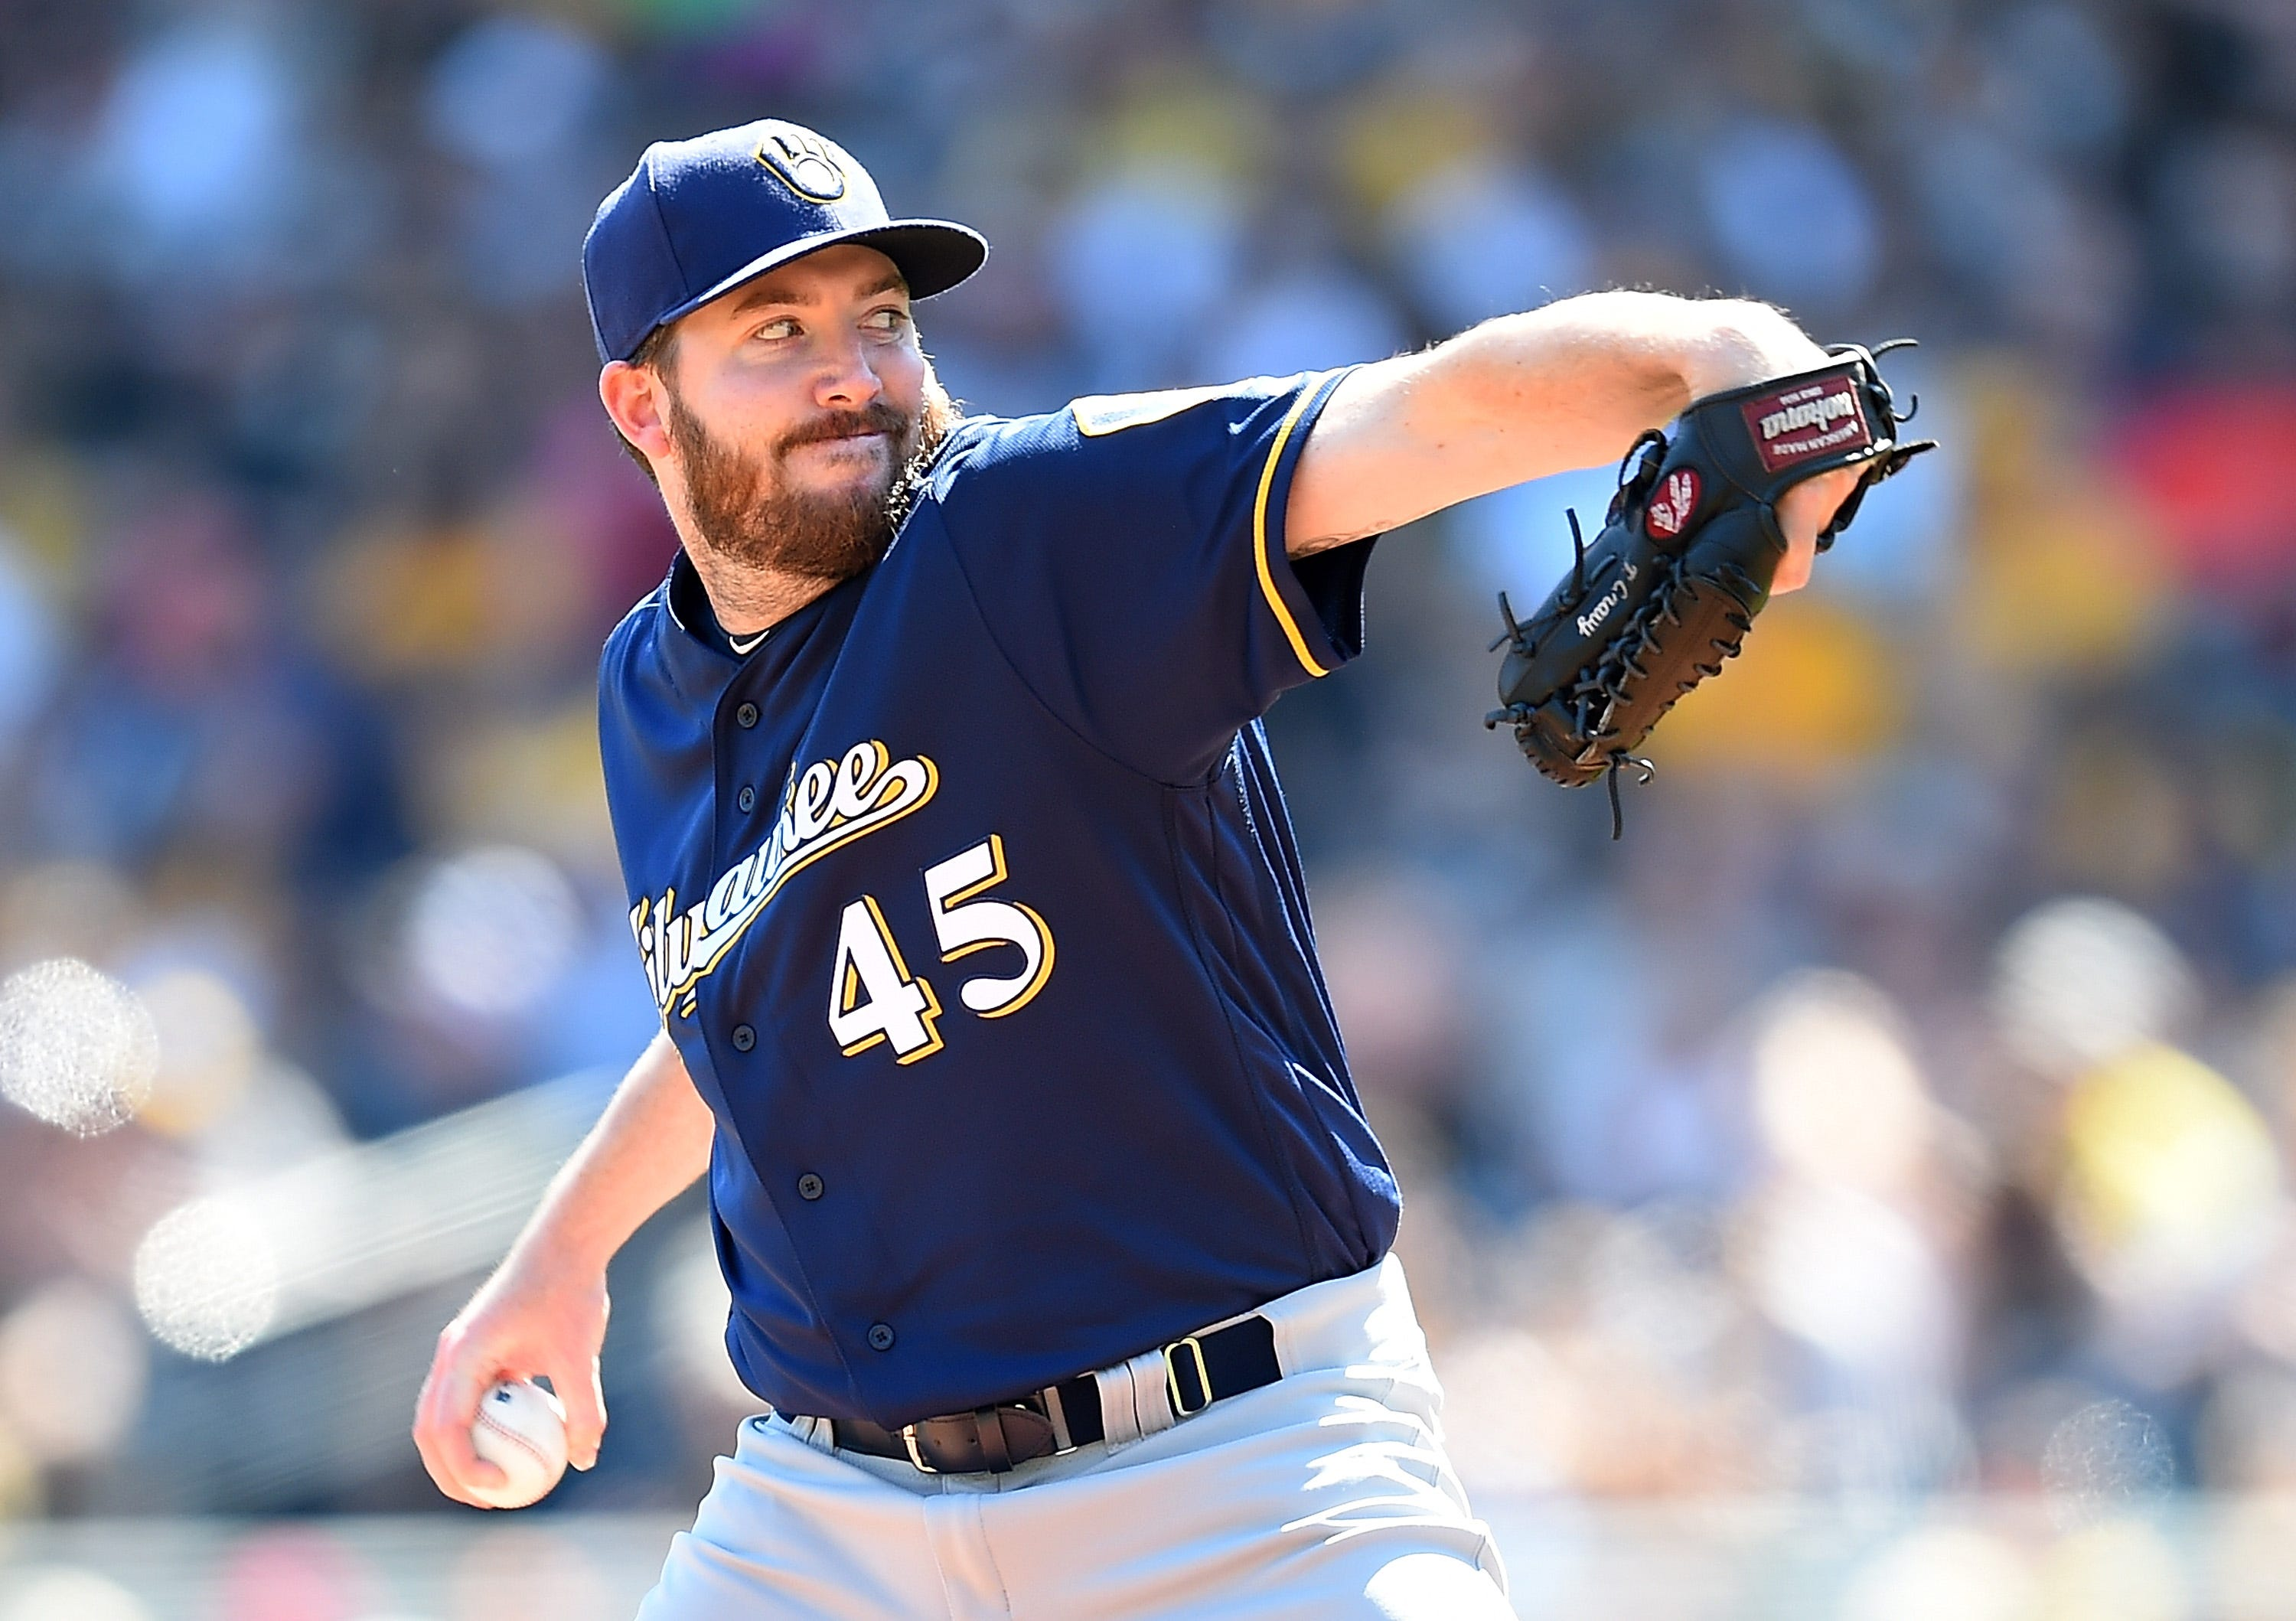 Notes: Reliever Tyler Cravy has an up-and-down day with the Brewers, literally